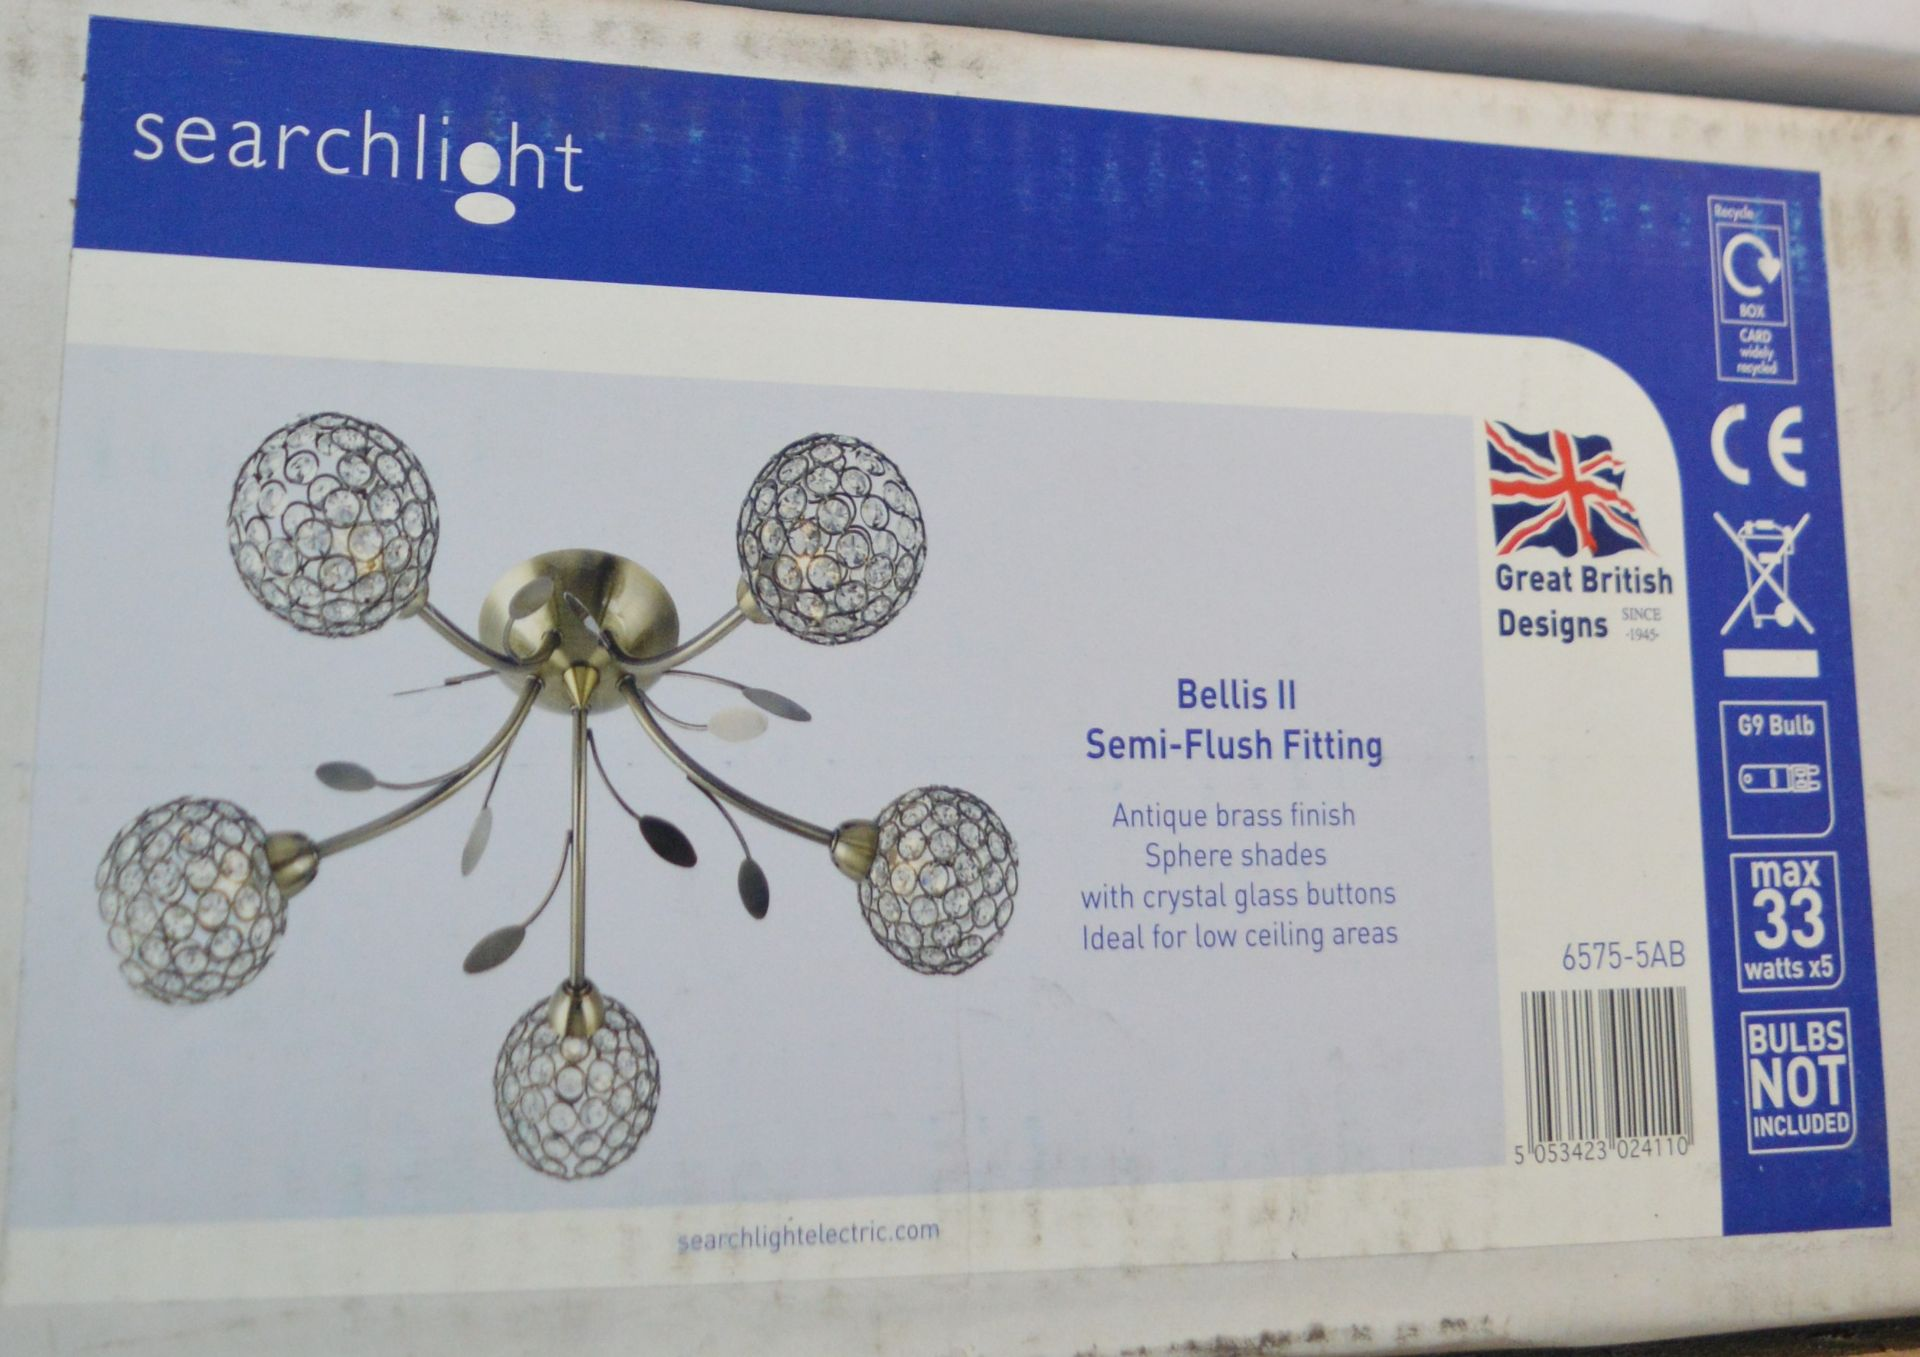 Lot 9112 - 1 x Searchlight Bellis II Semi Flush Ceiling Light Fittings in Antique Brass With Sphere Shades -